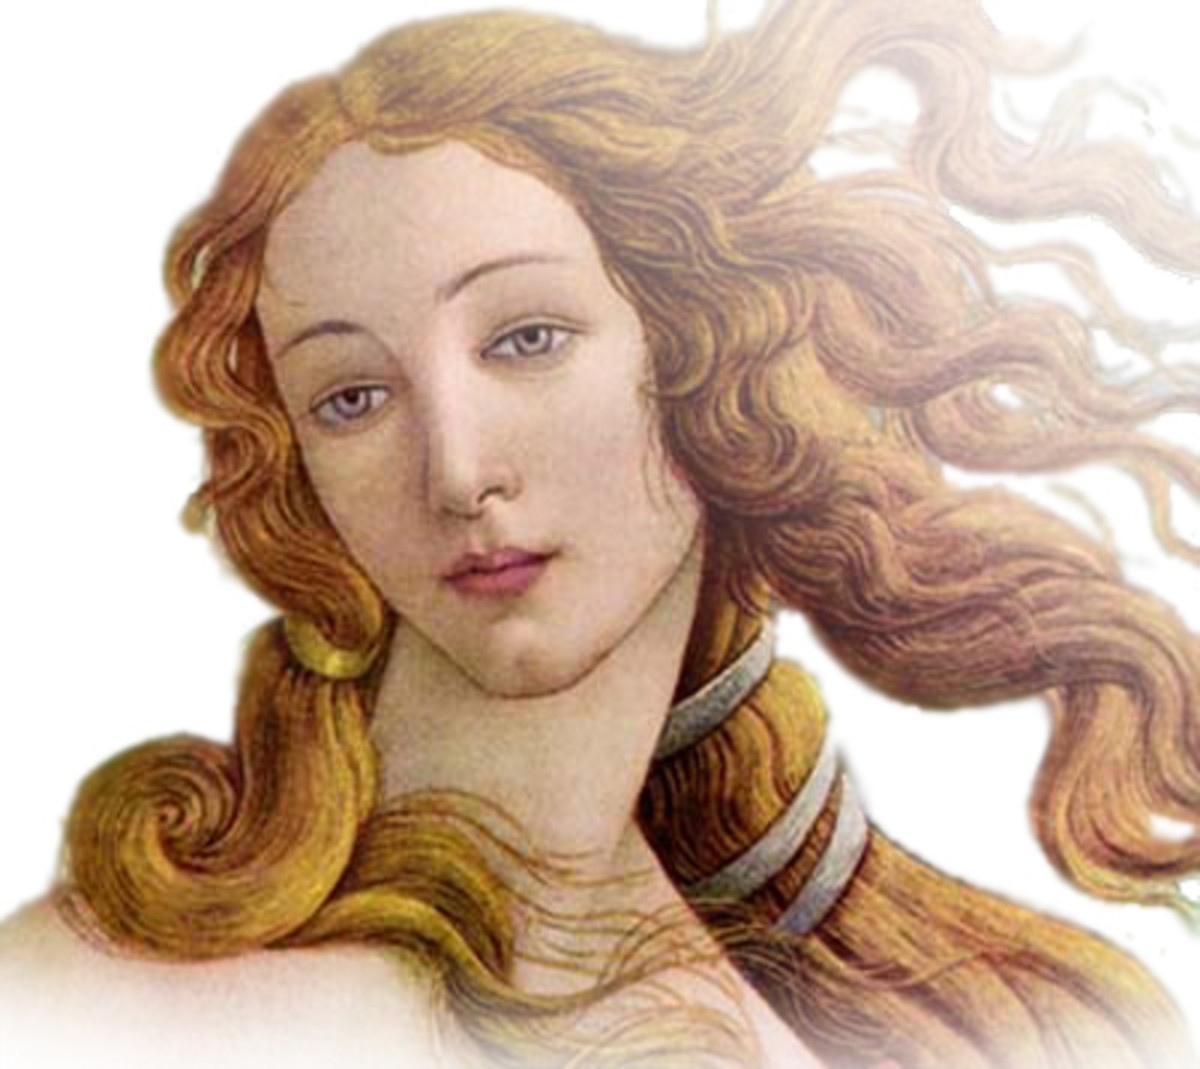 There are very few depictions of Aphrodite where she is not naked. Here is a more modest pose.